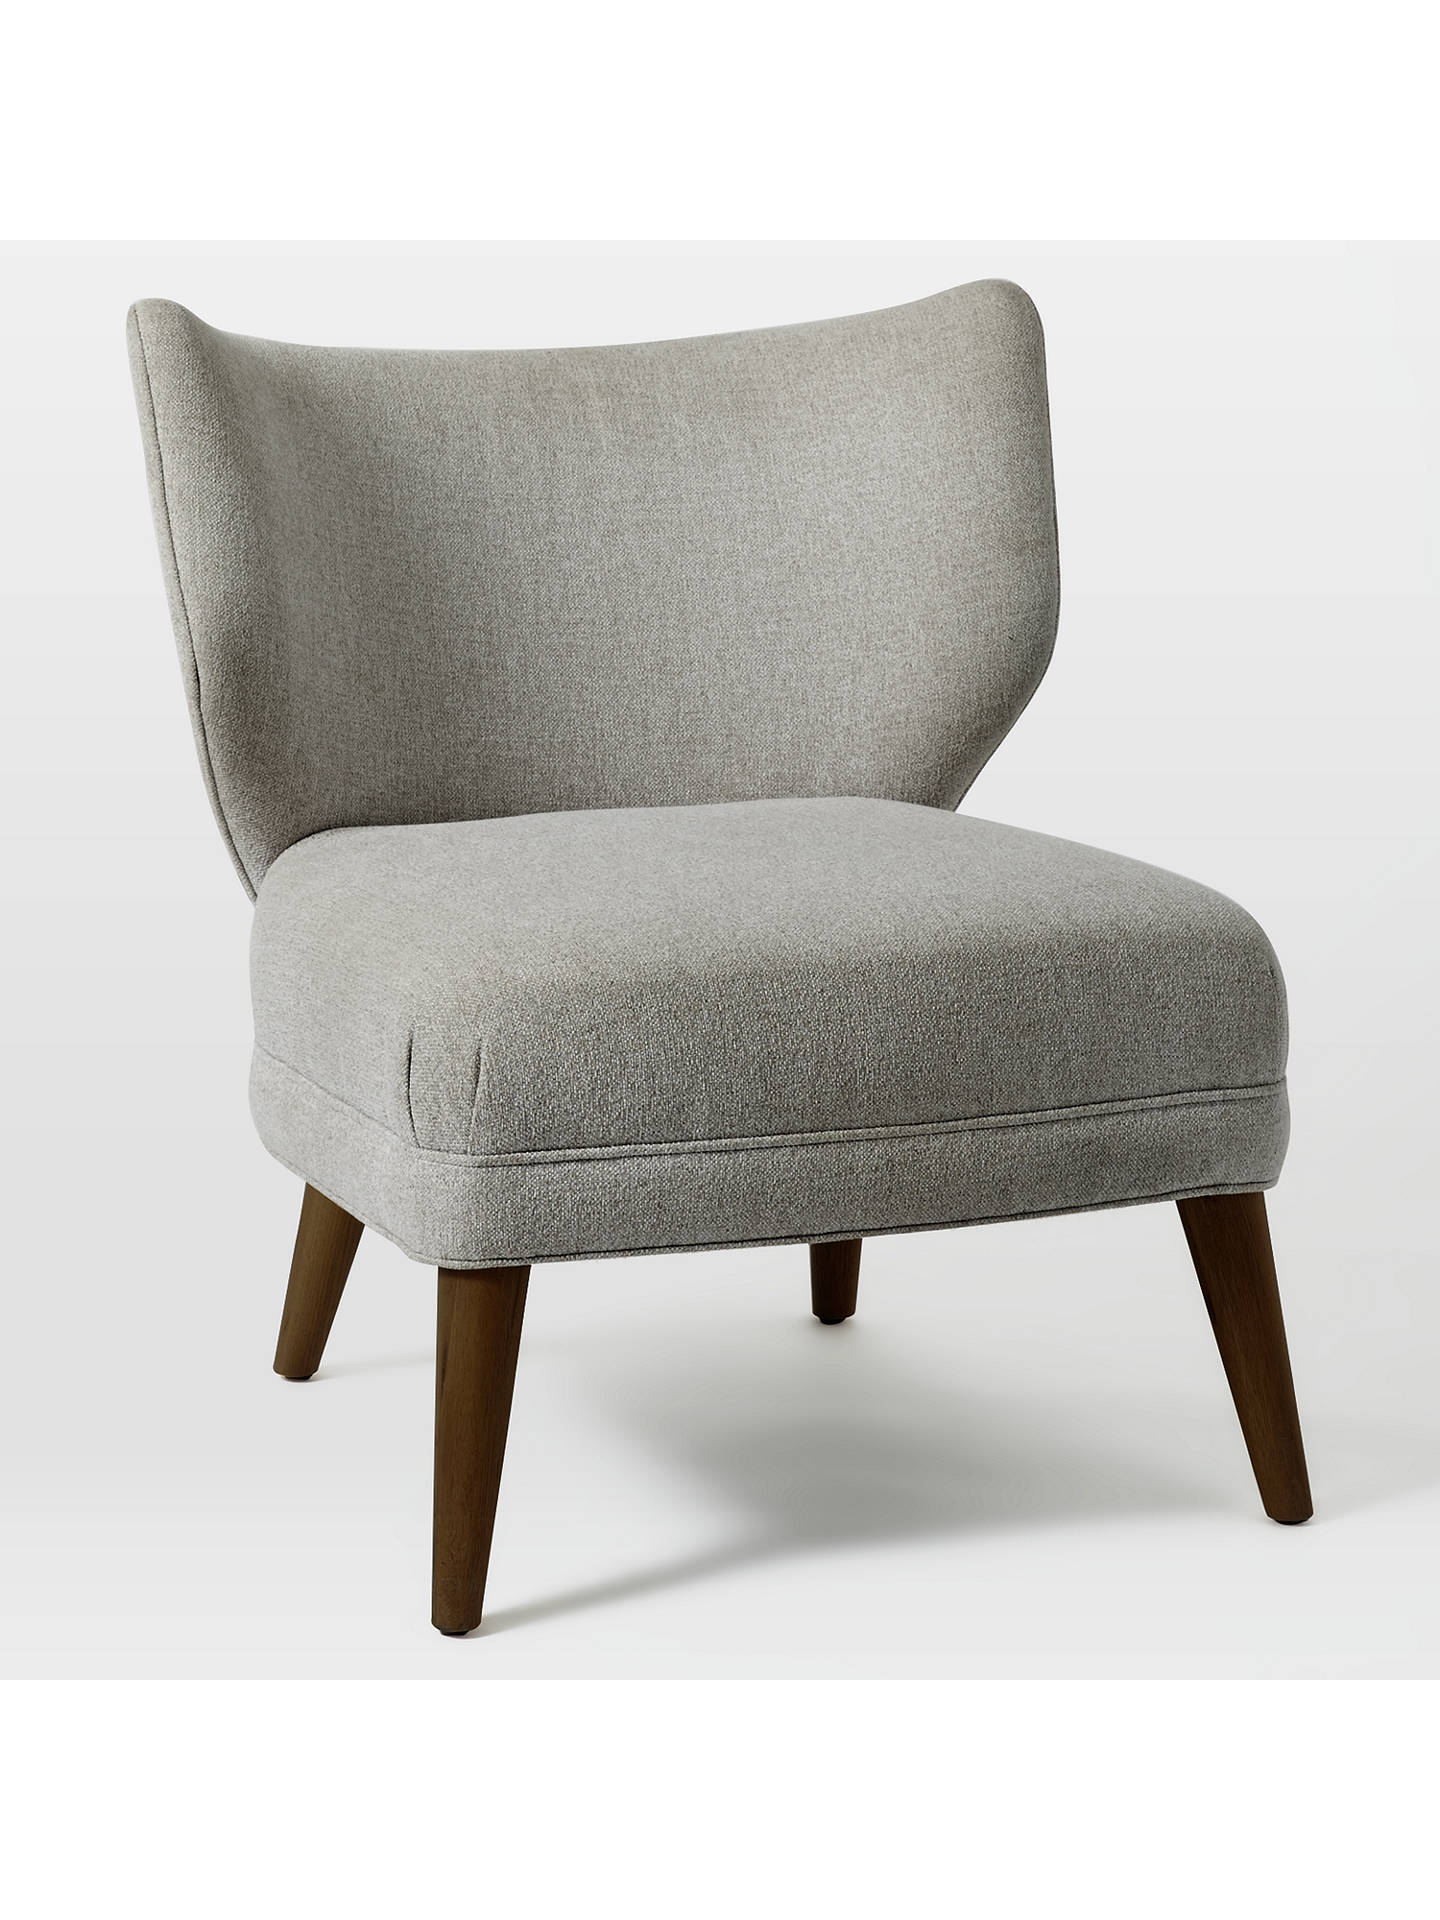 West Elm Retro Wing Chair Retro Weave Grey At John Lewis Partners